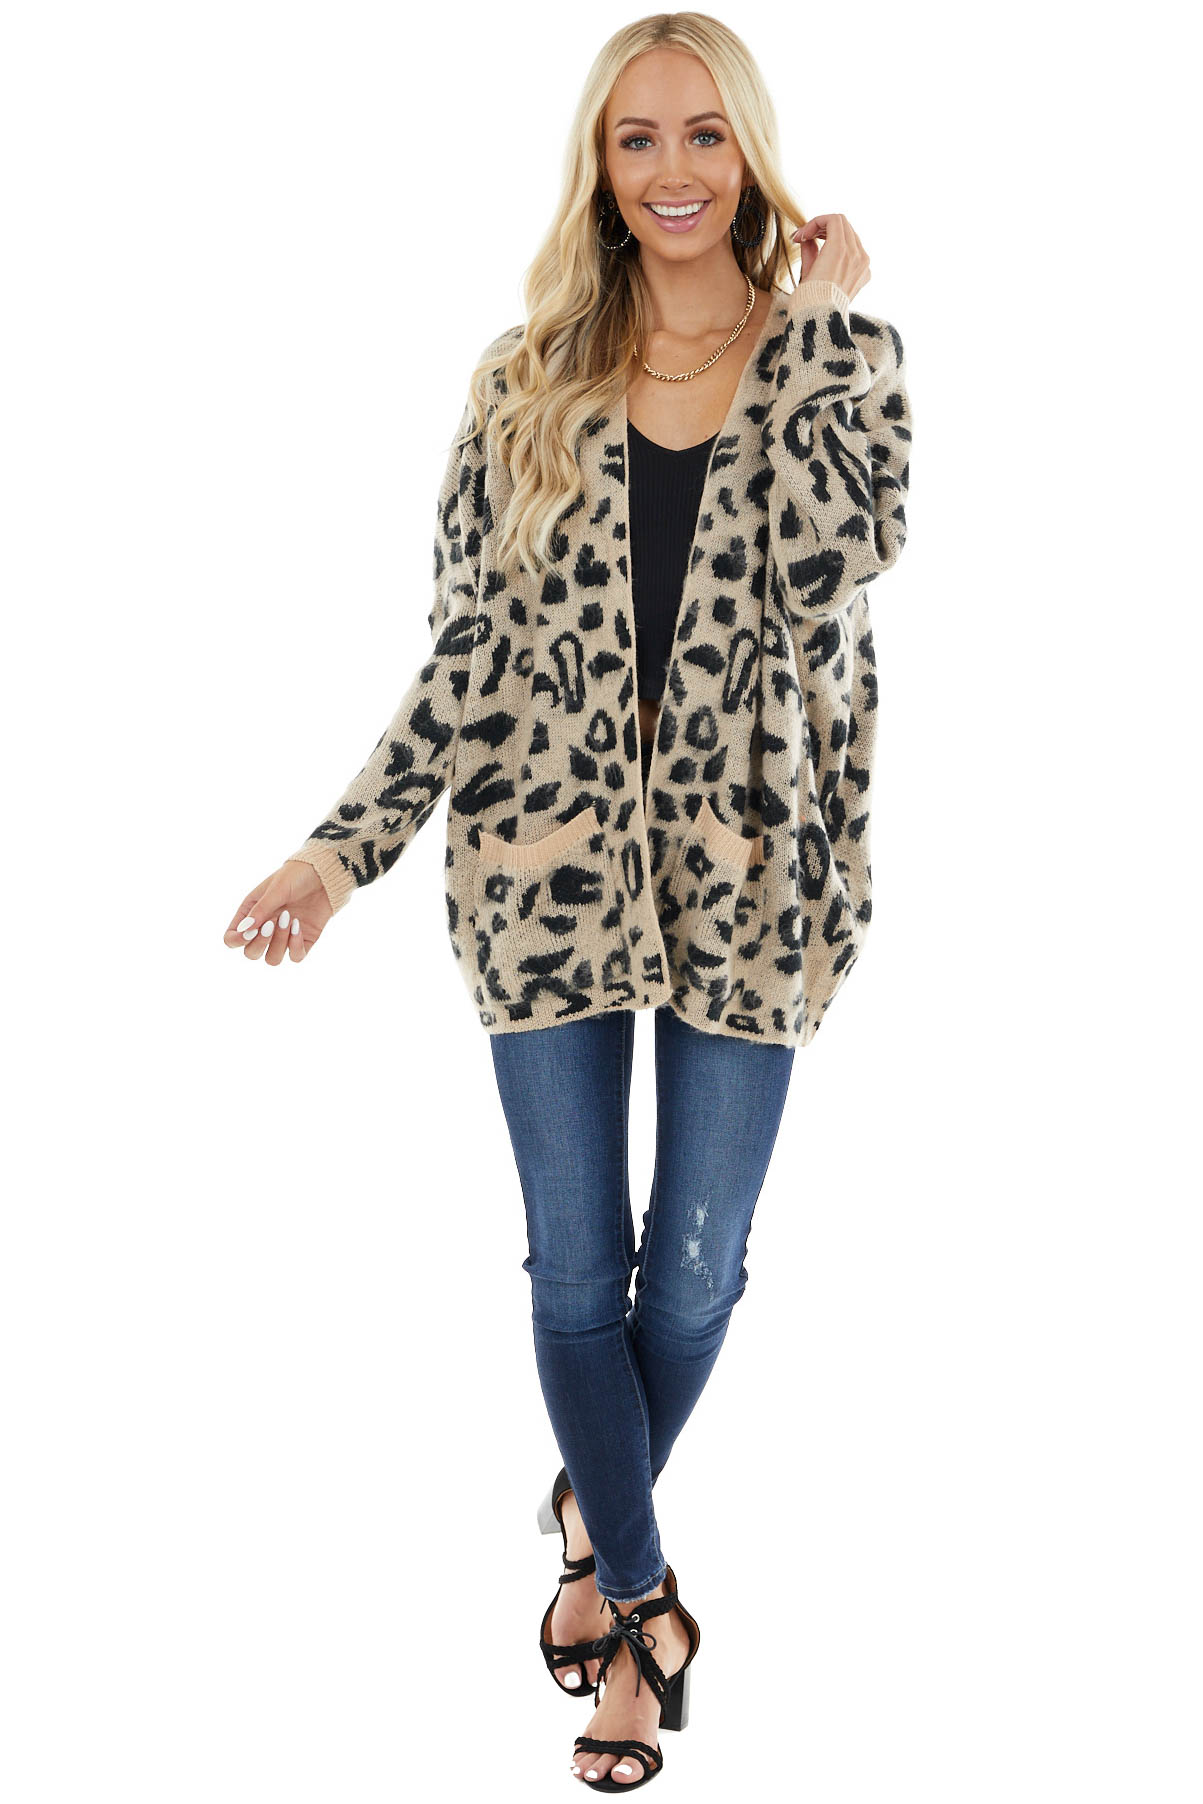 Desert Sand Leopard Print Open Front Cardigan with Pockets